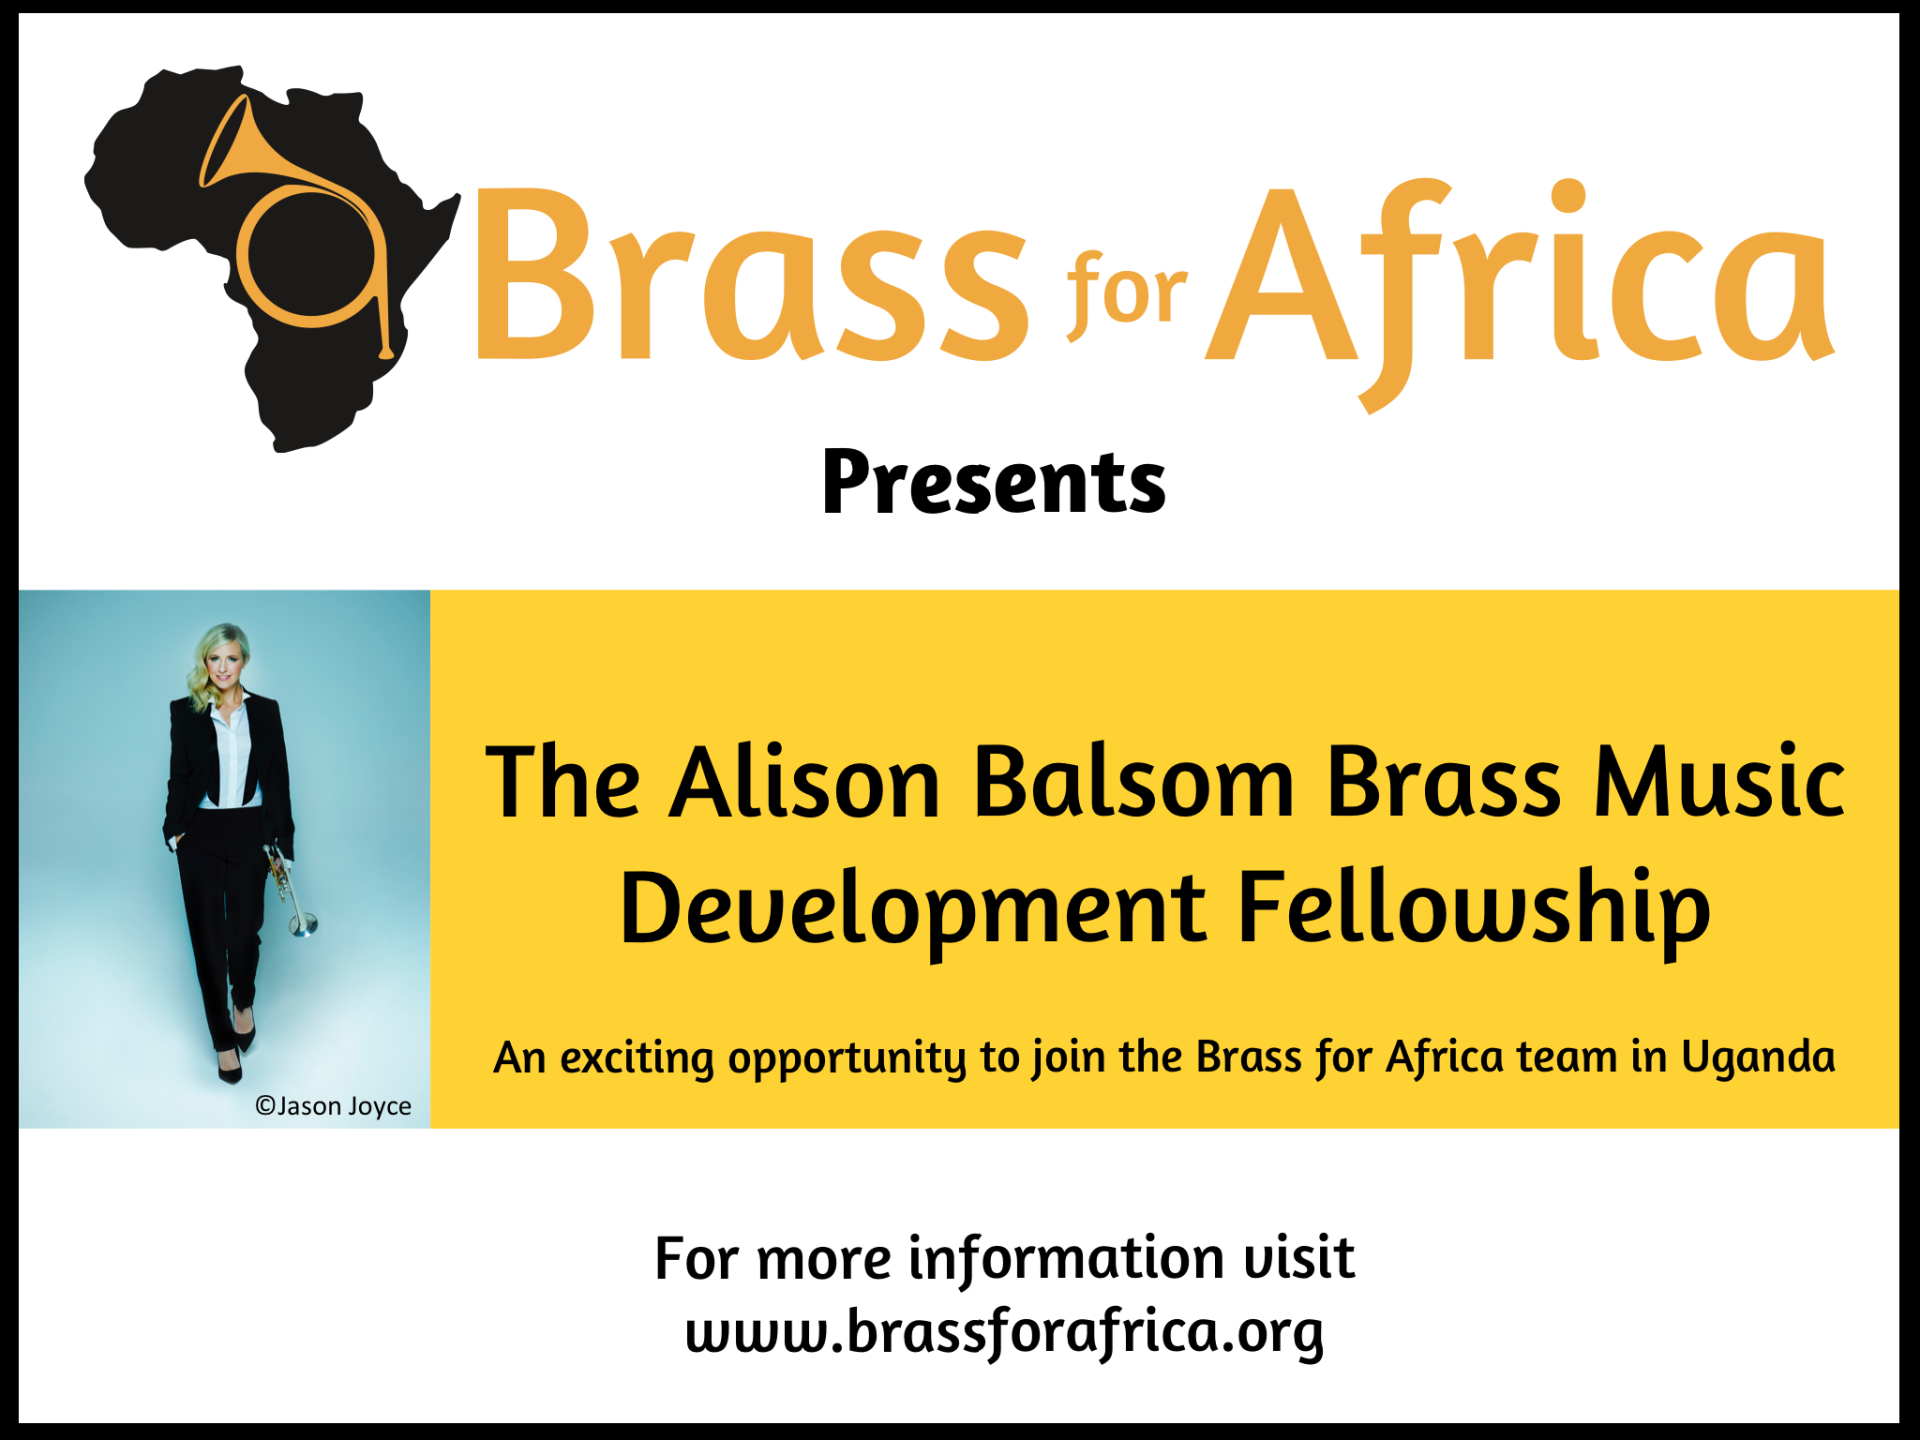 The Alison Balsom Brass Music Development Fellowship